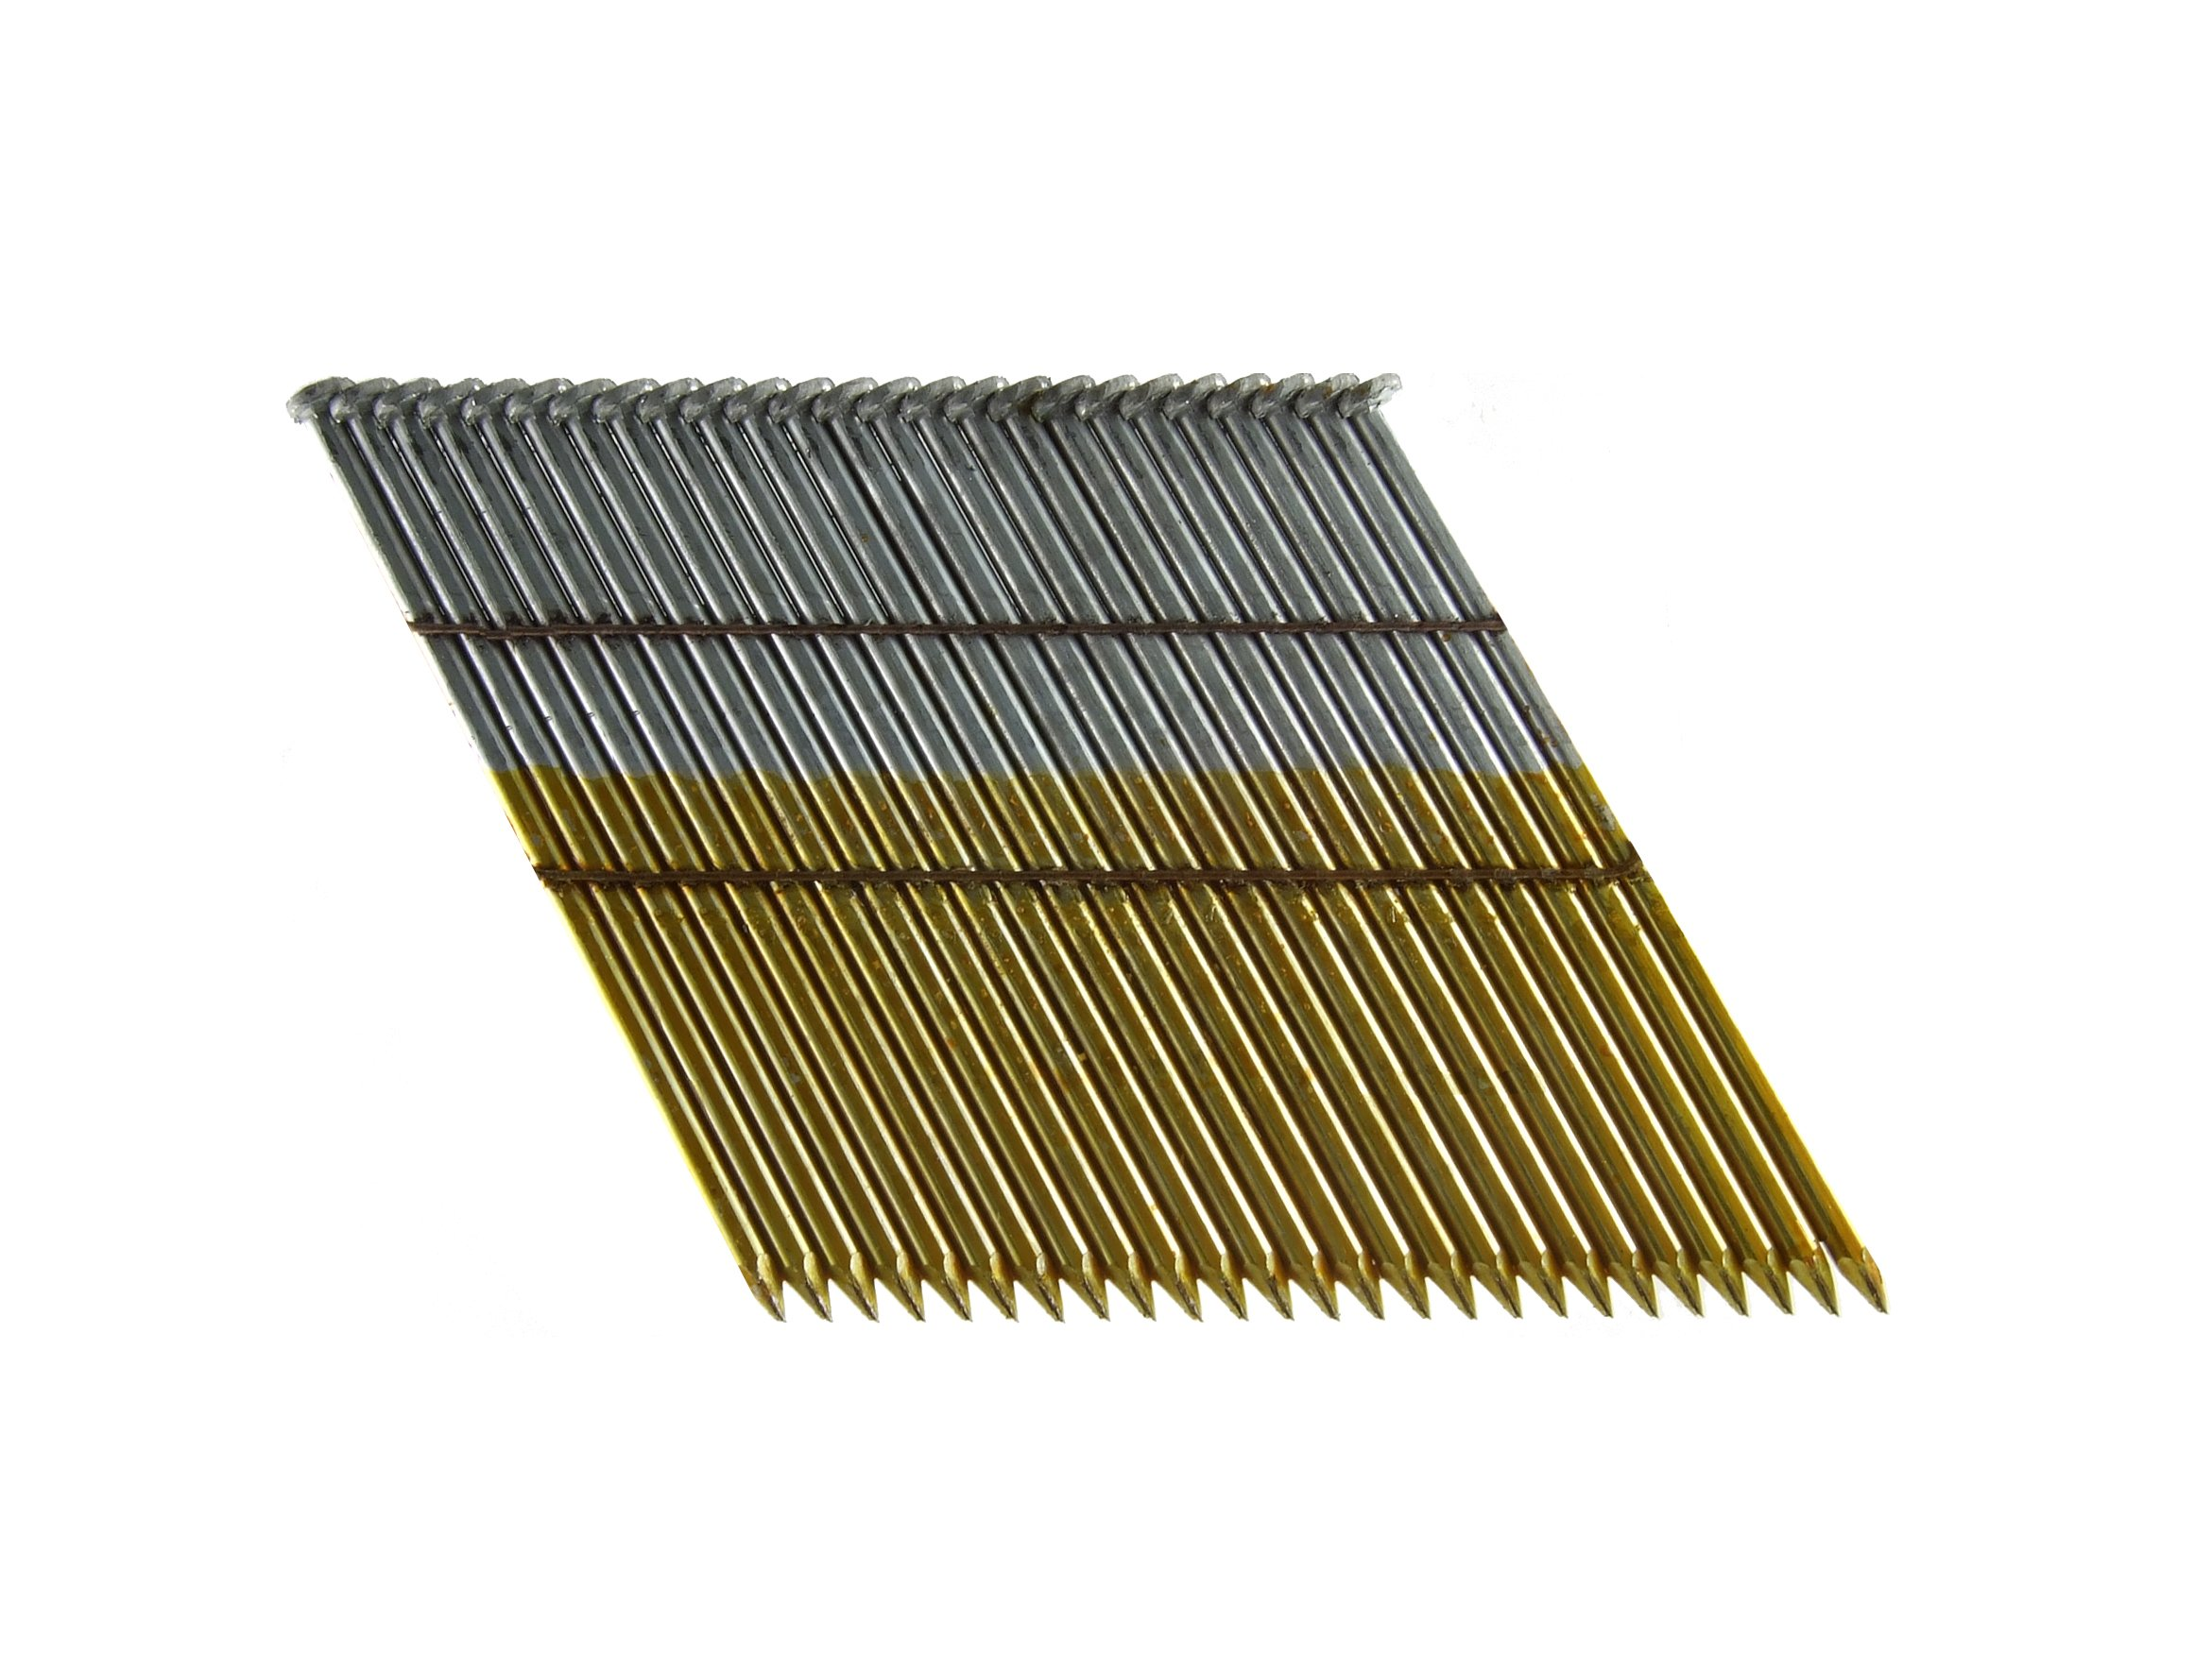 B&C Eagle 312X131HD/28 Offset Round Head 3-1/2-Inch x .131 x 28 Degree Hot Dip Galvanized Smooth Shank Wire Collated Framing Nails (2,000 per box)